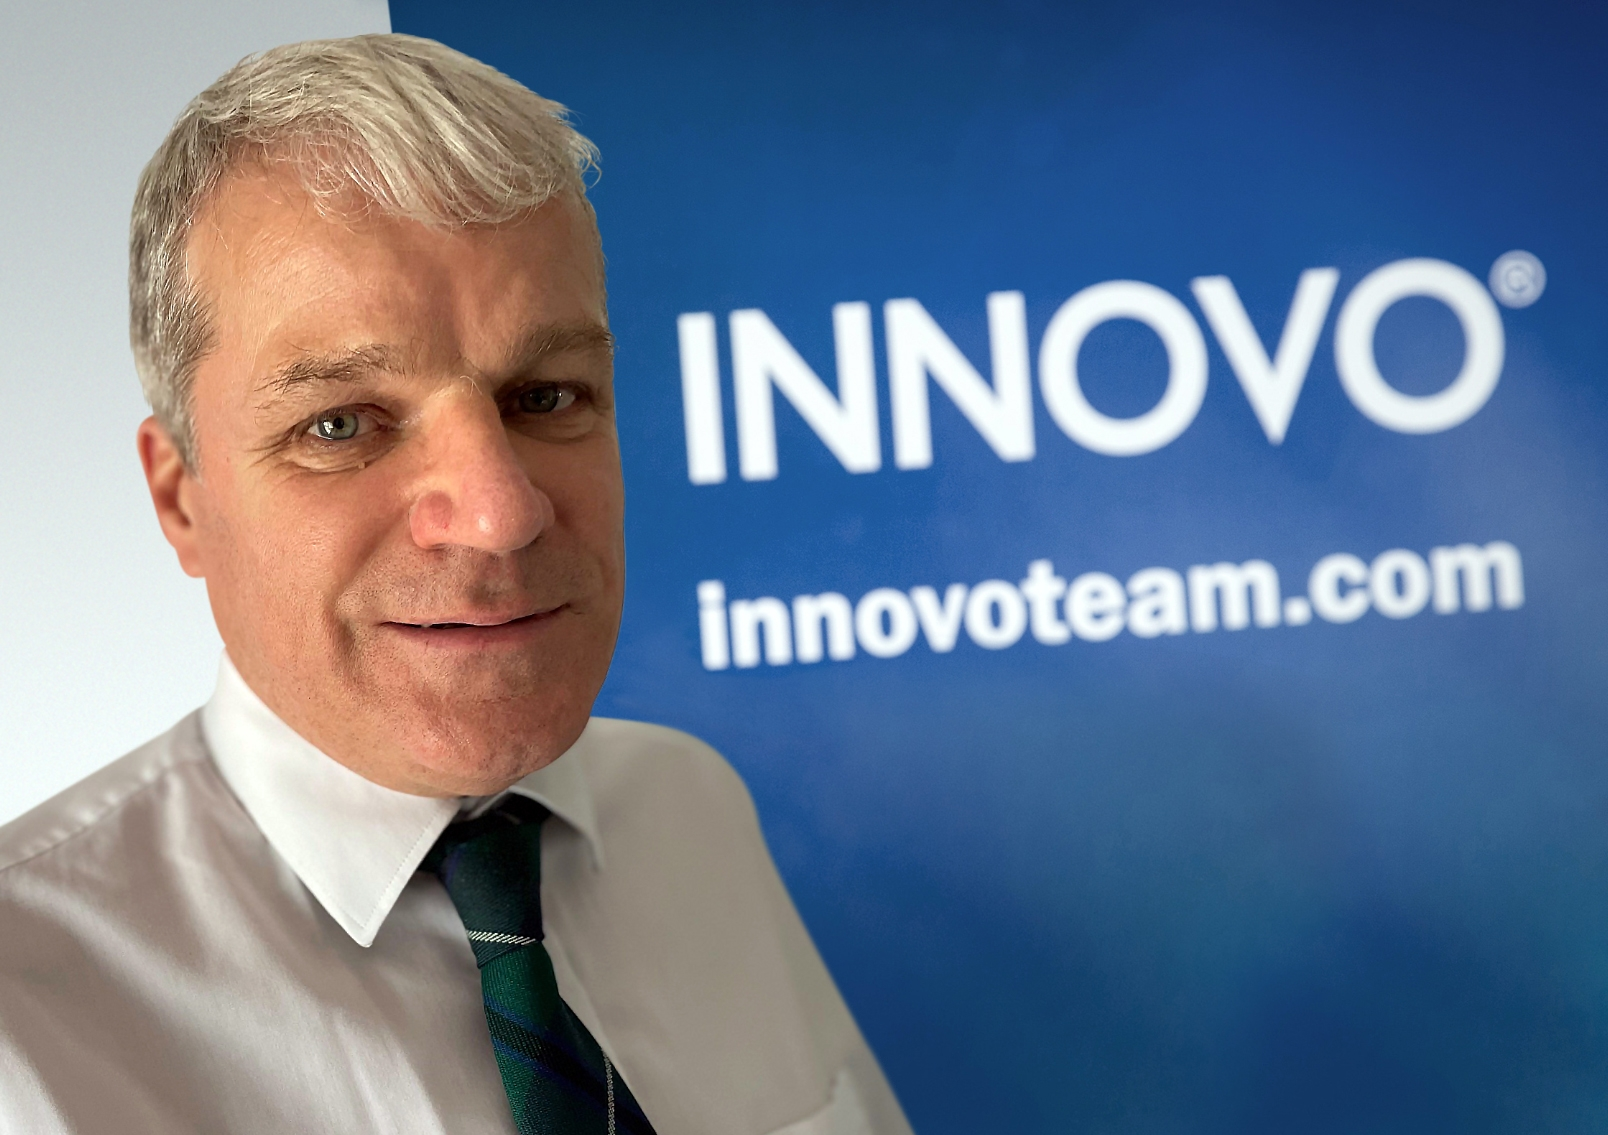 Innovo appoints proposals lead in the UK to support strategic growth